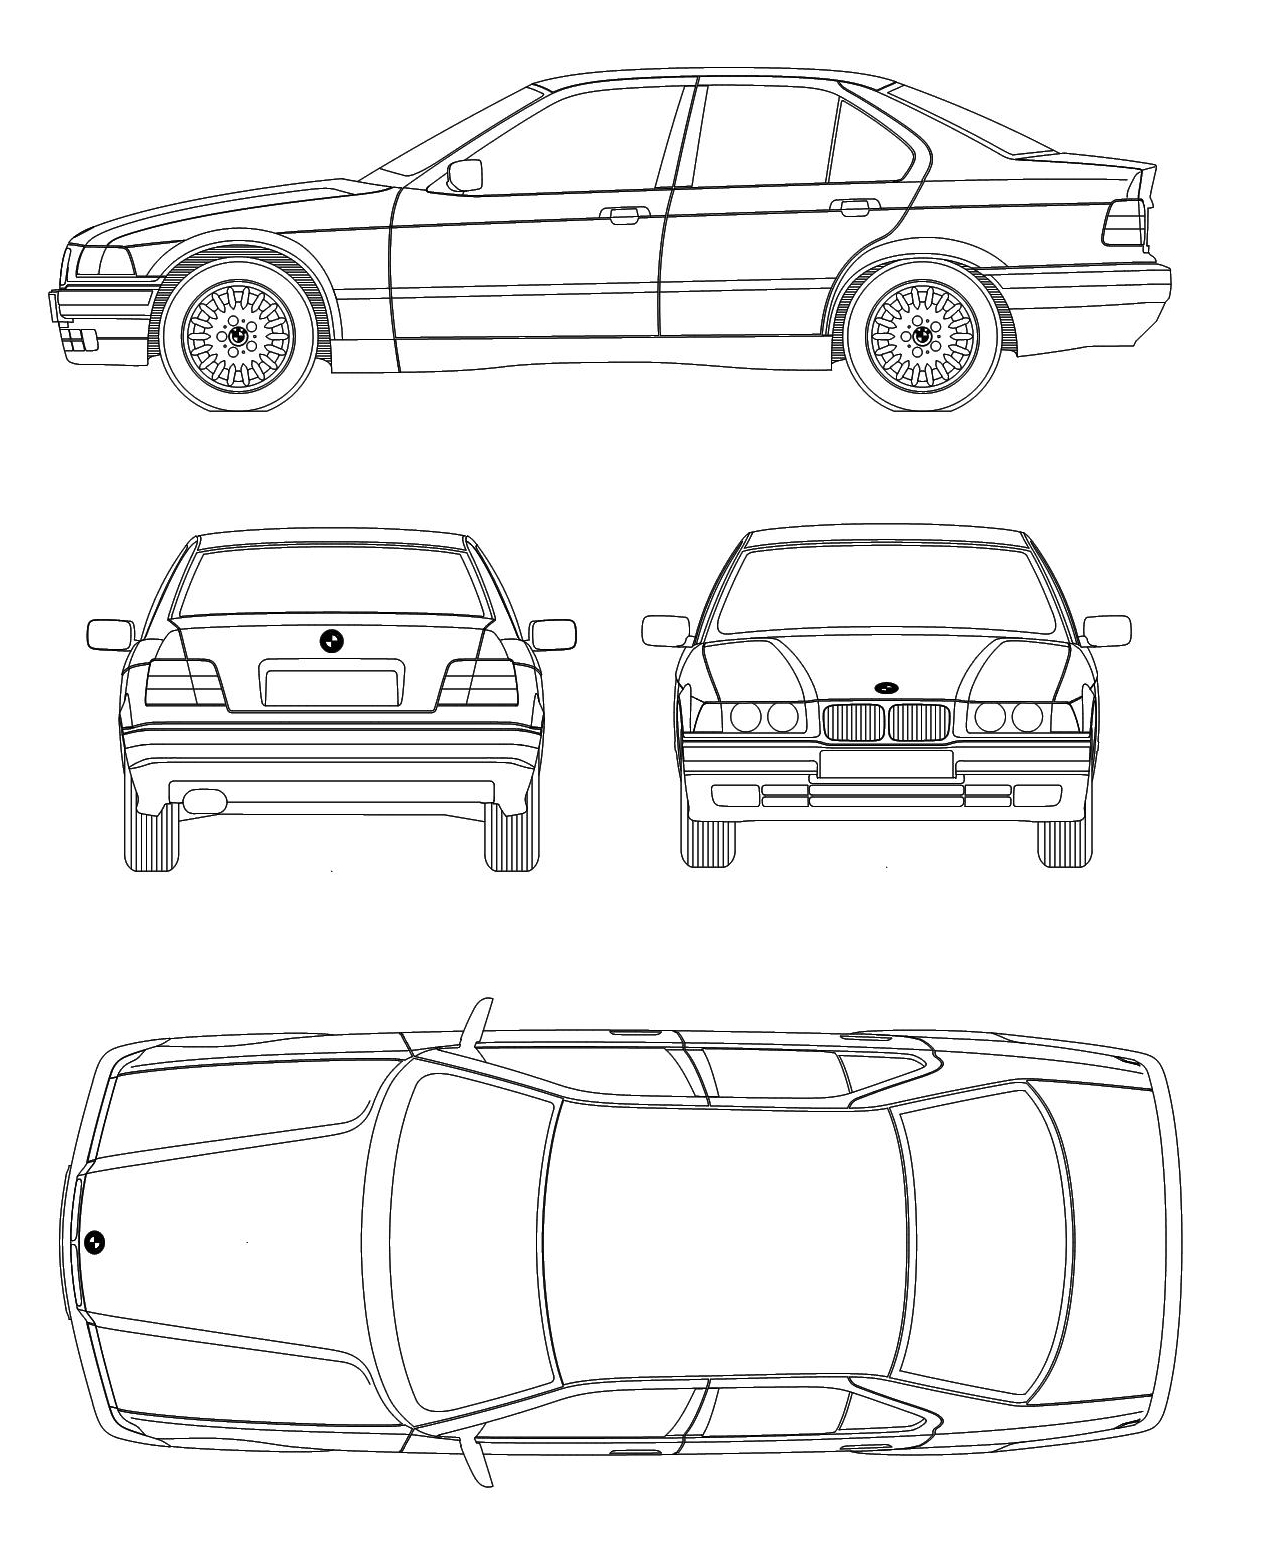 BMW E36 blueprint